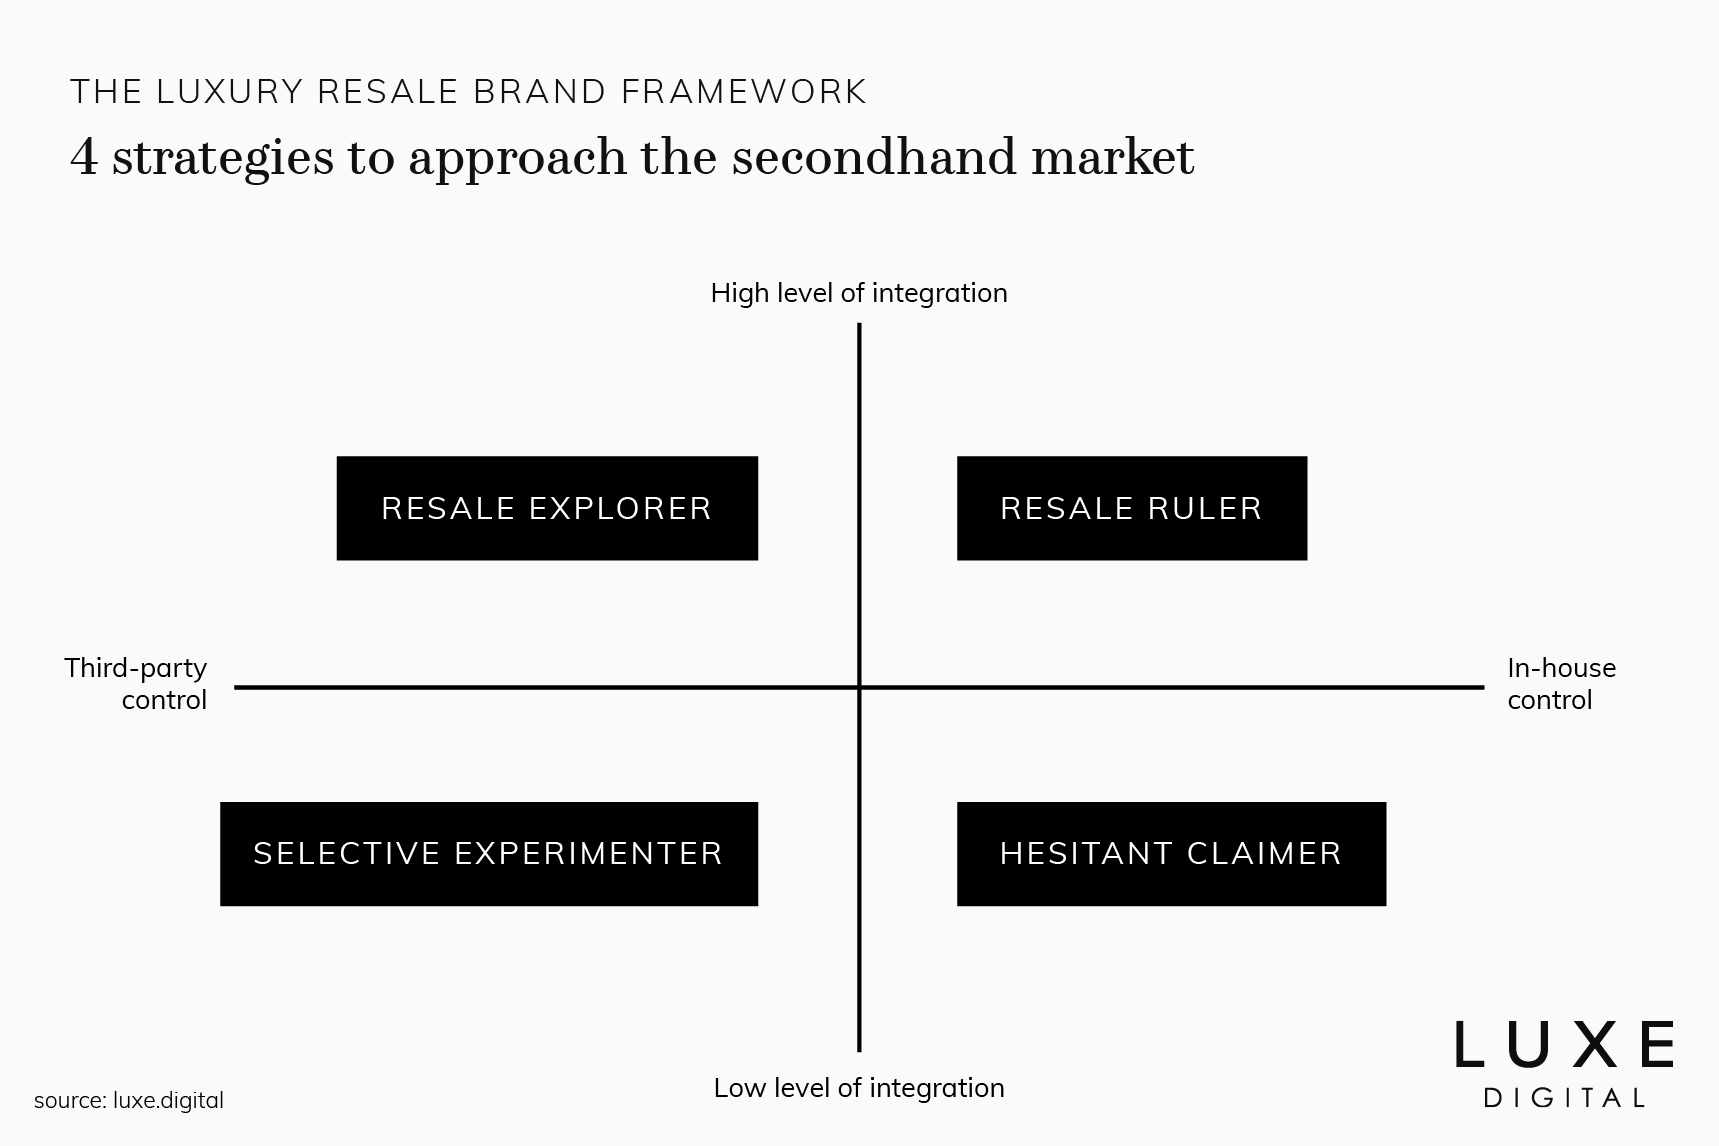 luxury resale brand framework luxe digital